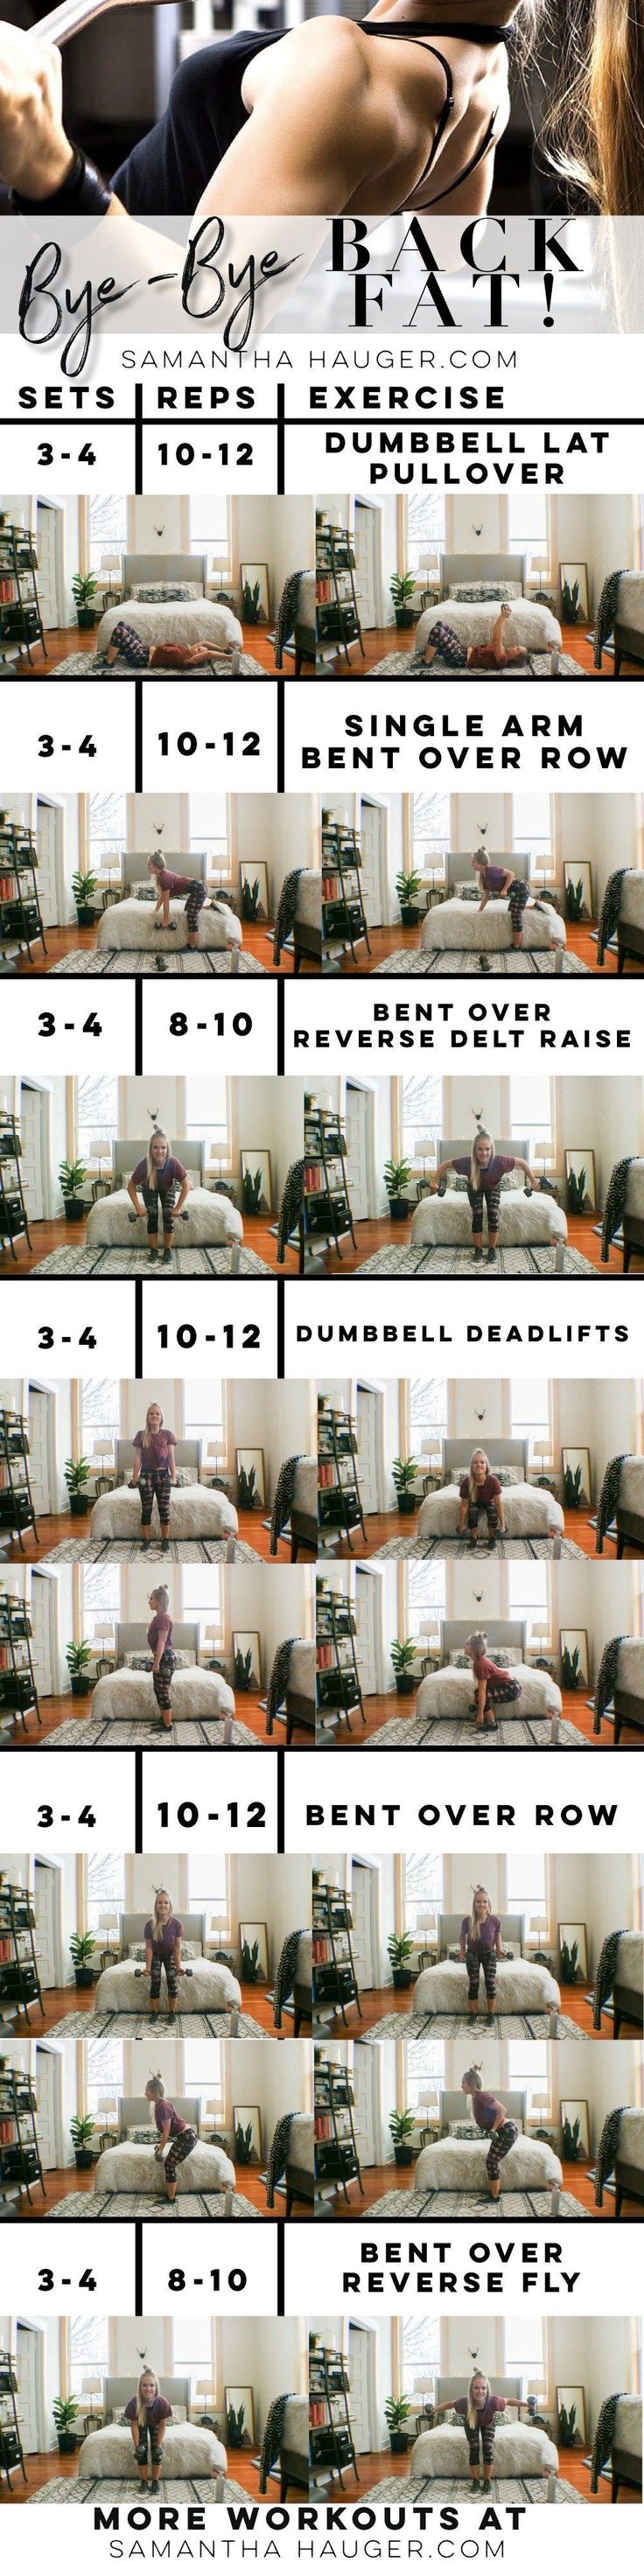 How To Get Rid Of Back Fat. How To Lose Back Fat. Exercises for back fat. Back workout for women. Back exercises. How to lose back fat. #howtolosebellyfatforwomen